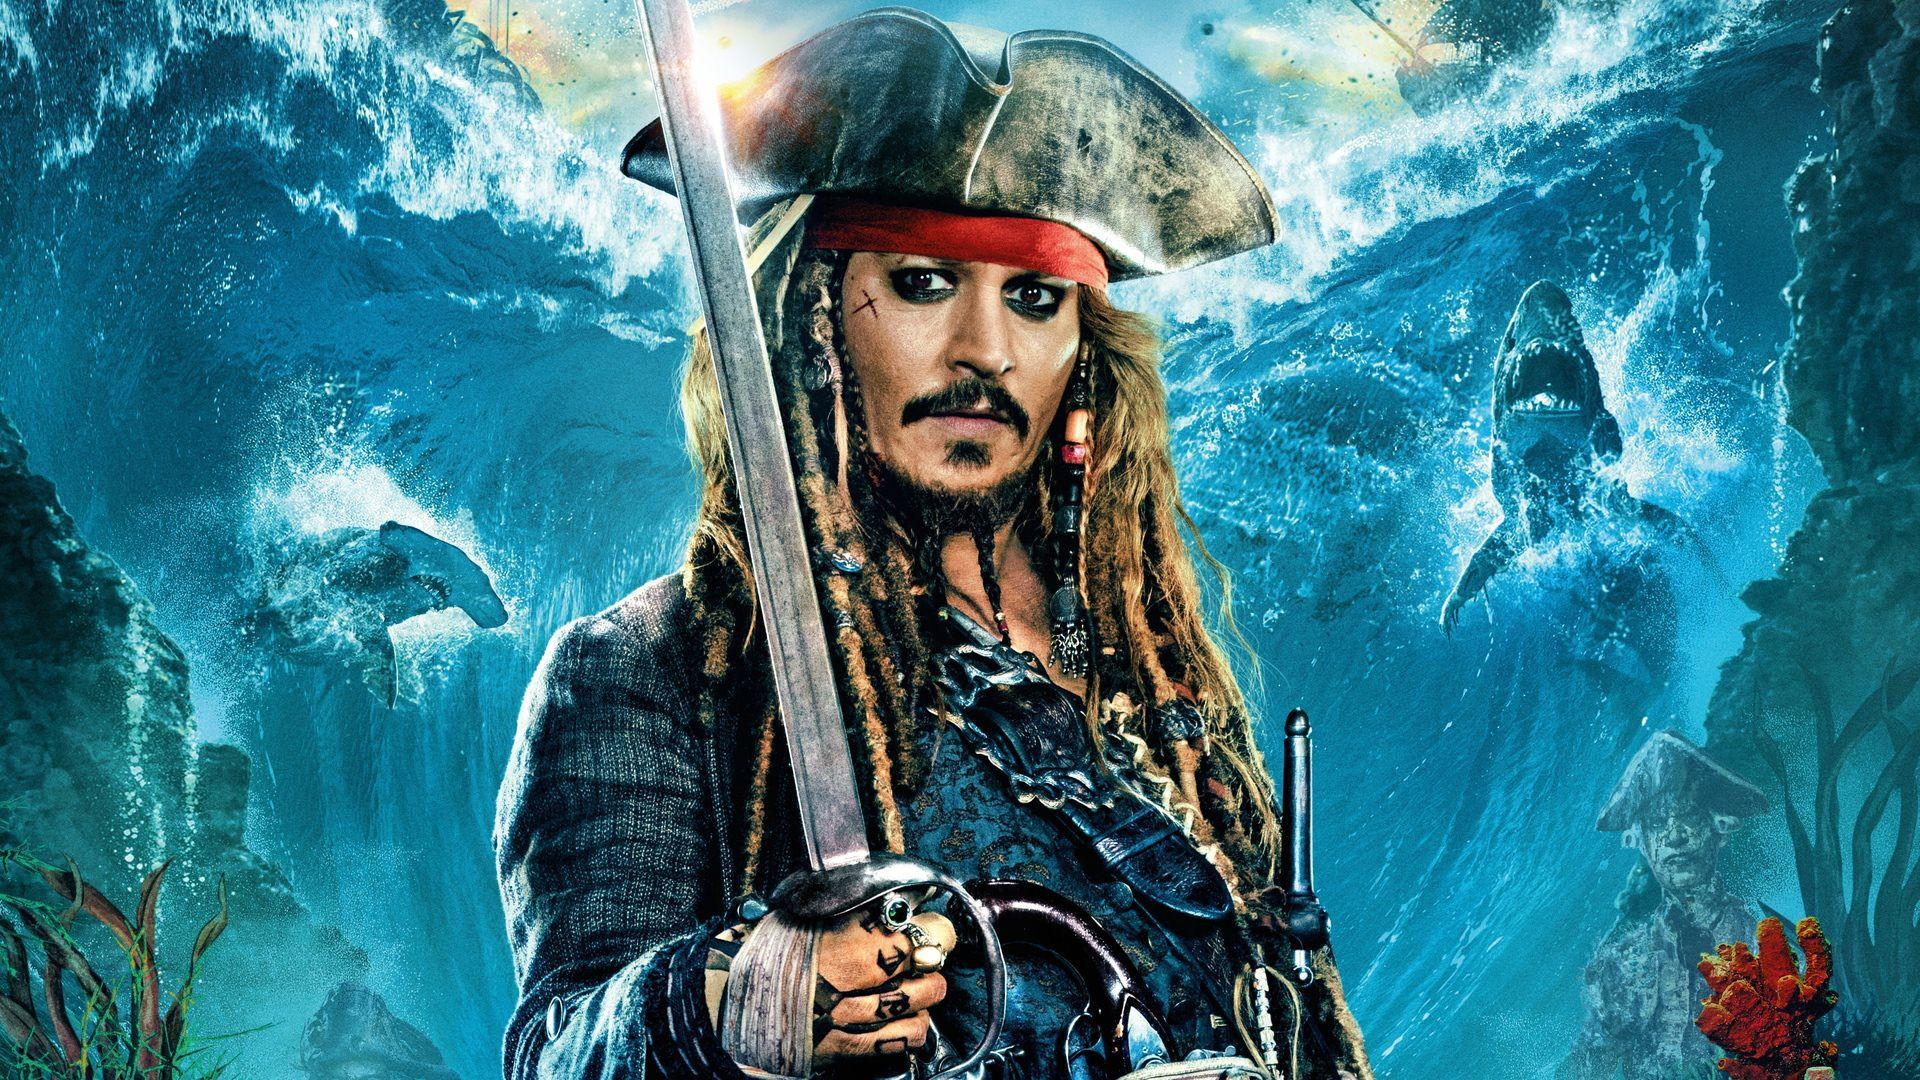 jack-sparrow-johnny-depp-piratas-caribe-1540563438